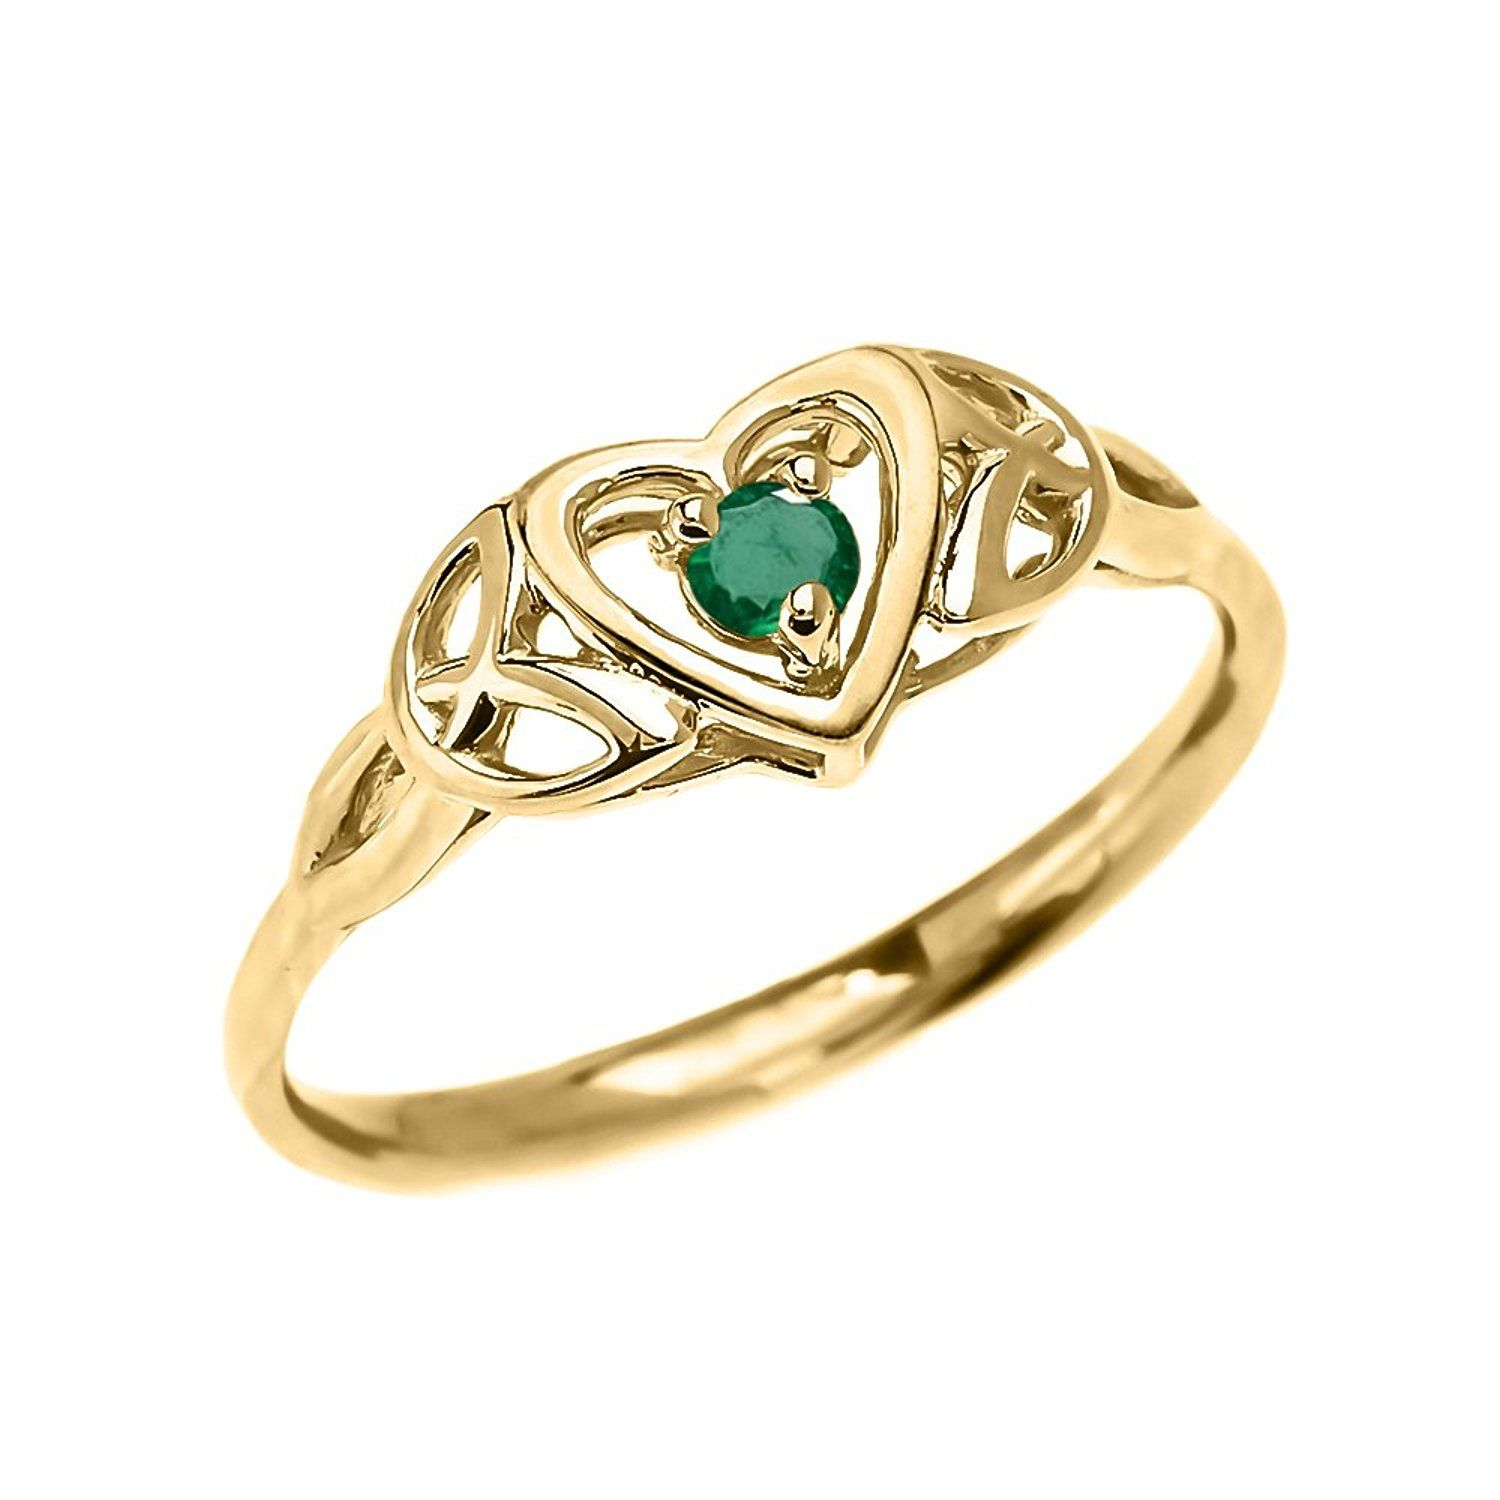 Dainty 10k Yellow Gold Trinity Knot Heart Solitaire Emerald